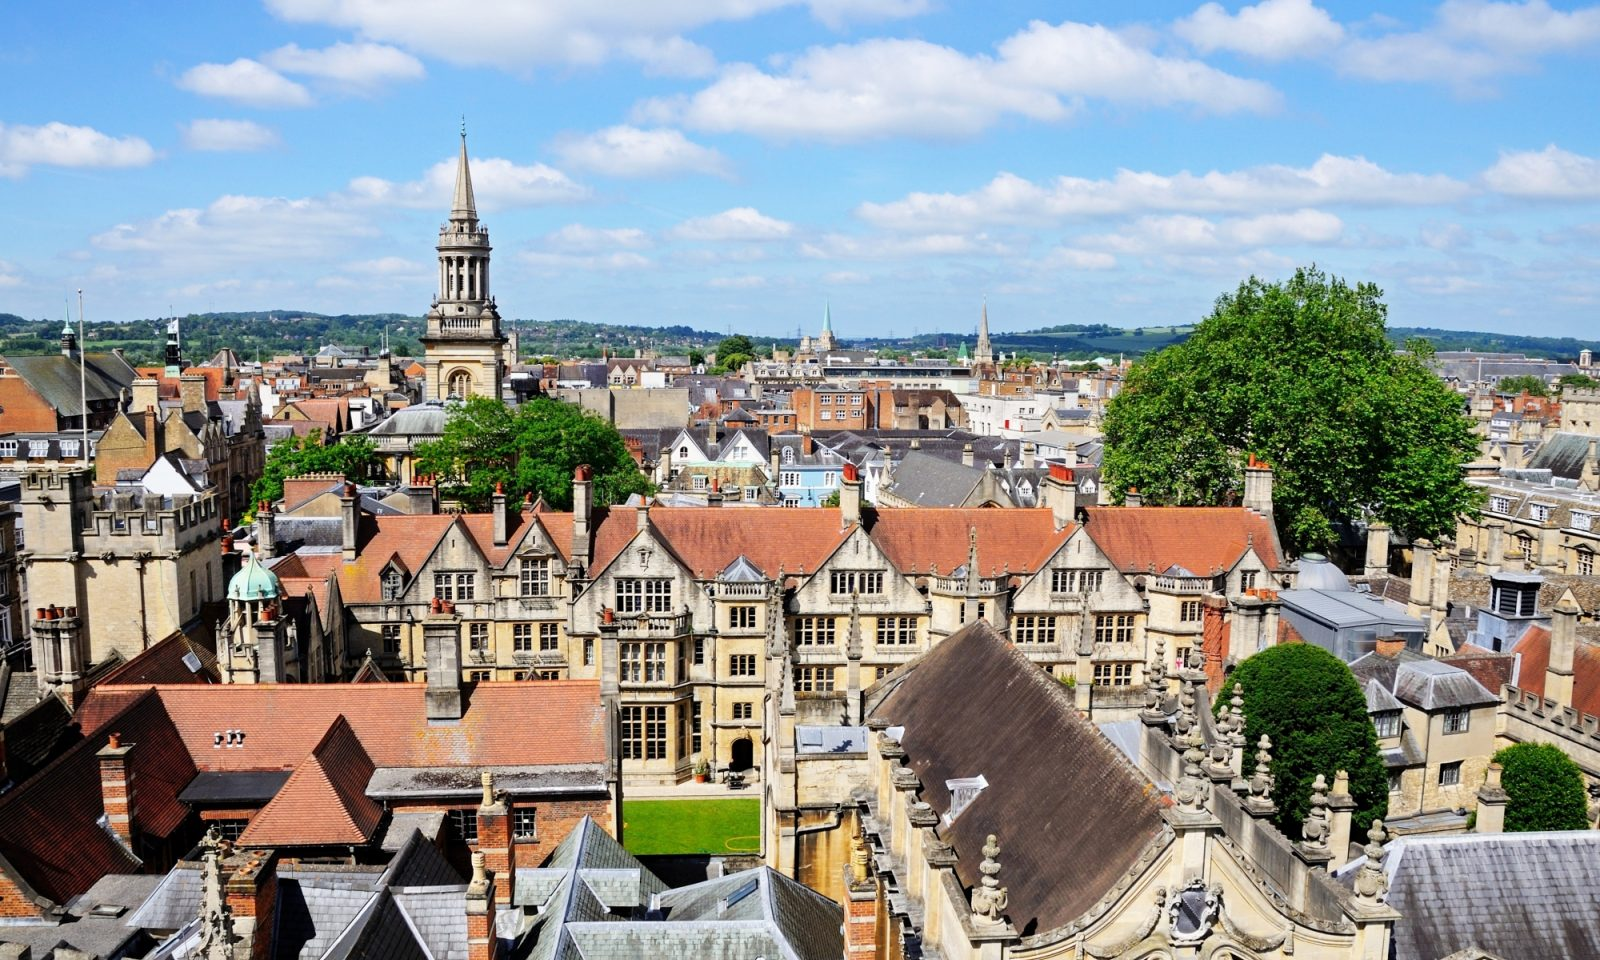 How we're planning a healthier, happier, greener future for Oxfordshire